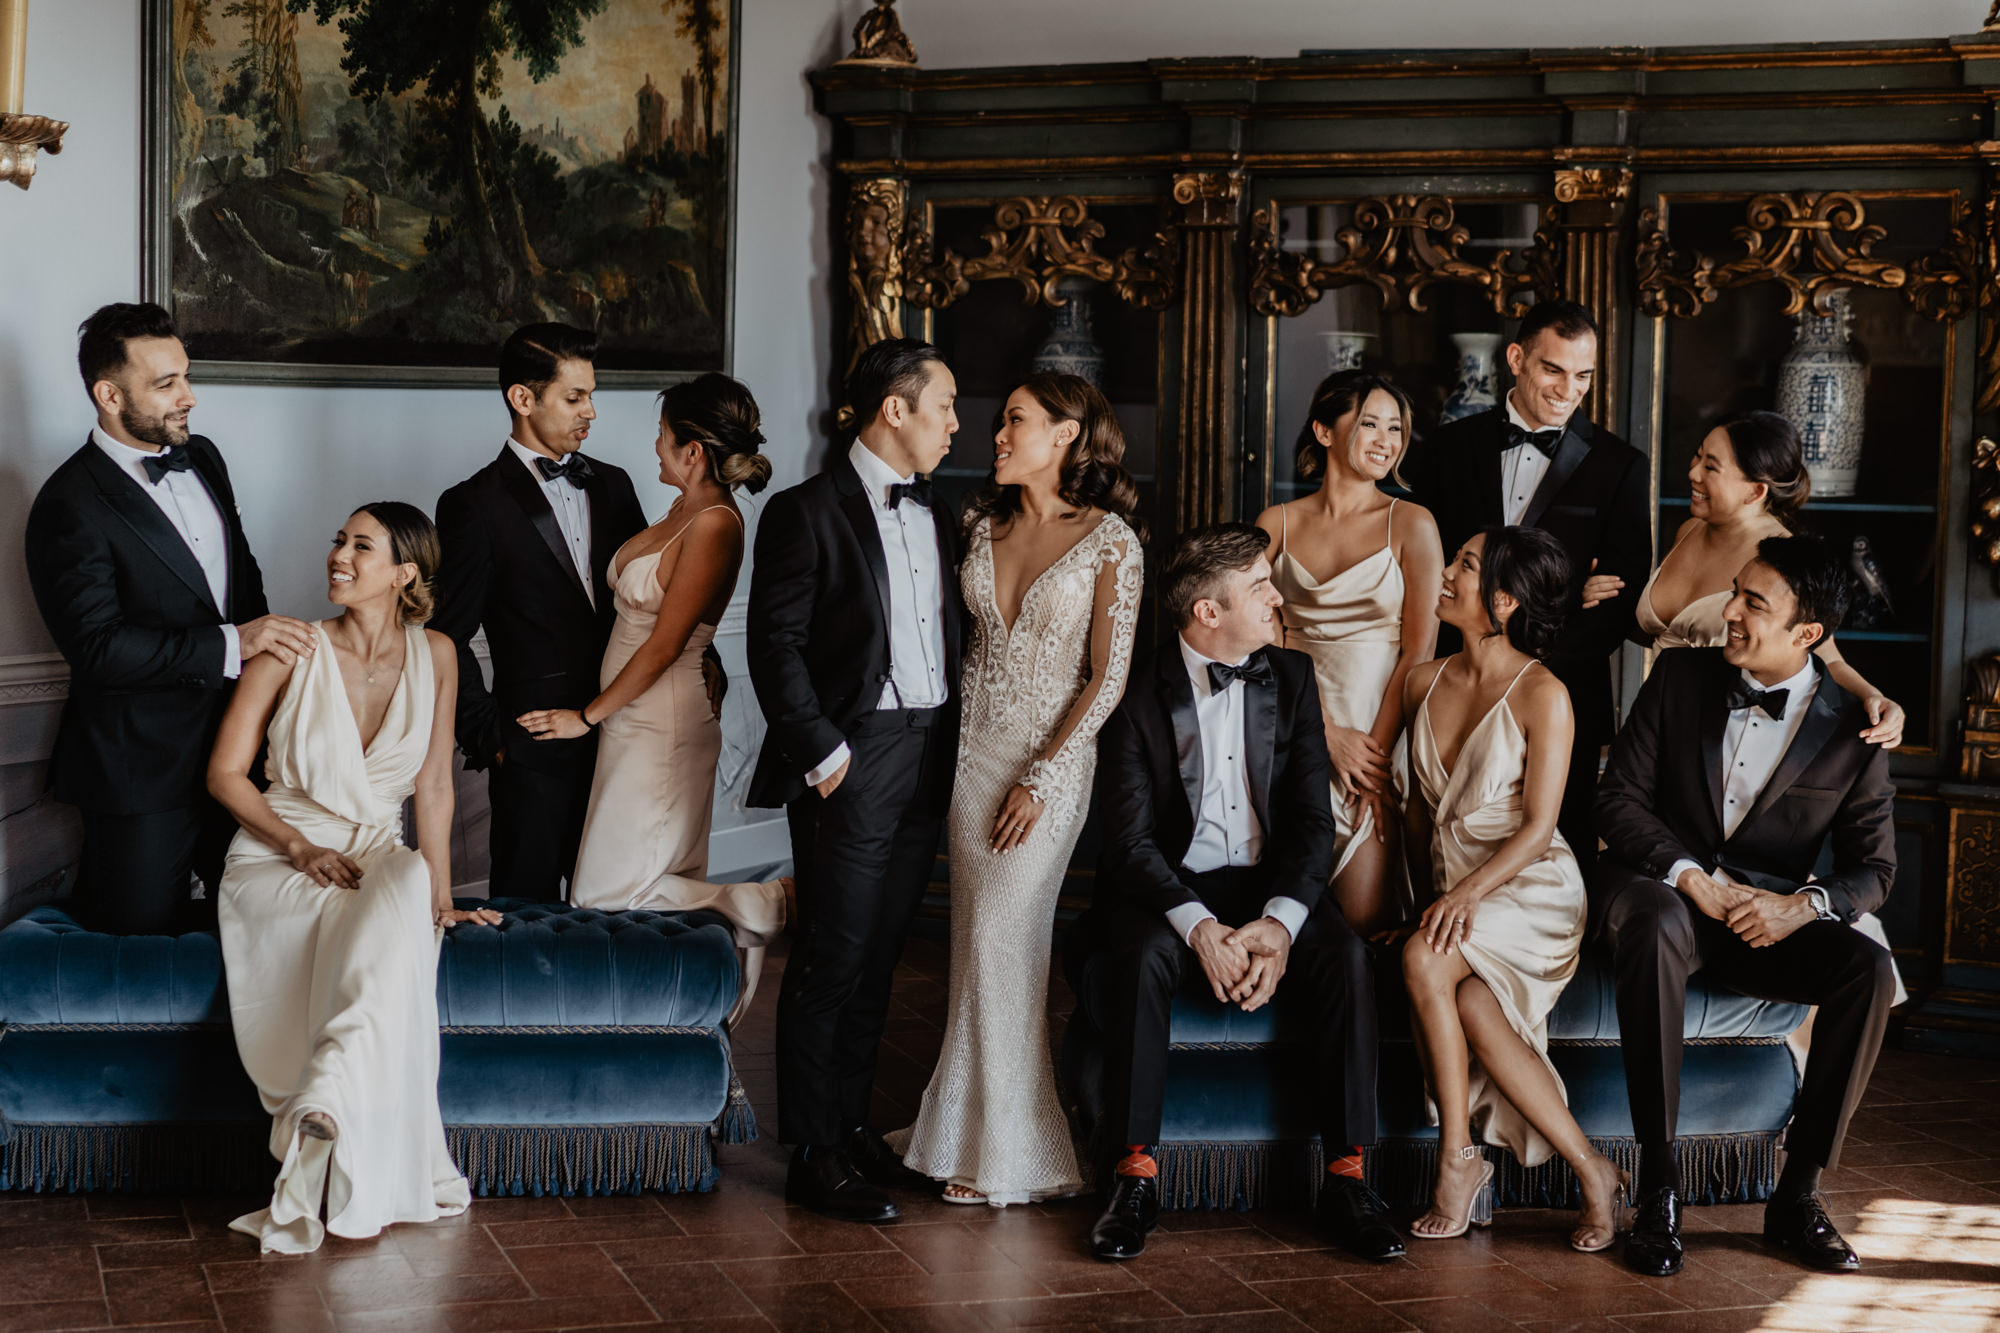 Bridal party in ivory satin wedding gowns - photographed by David Bastianoni - Italy